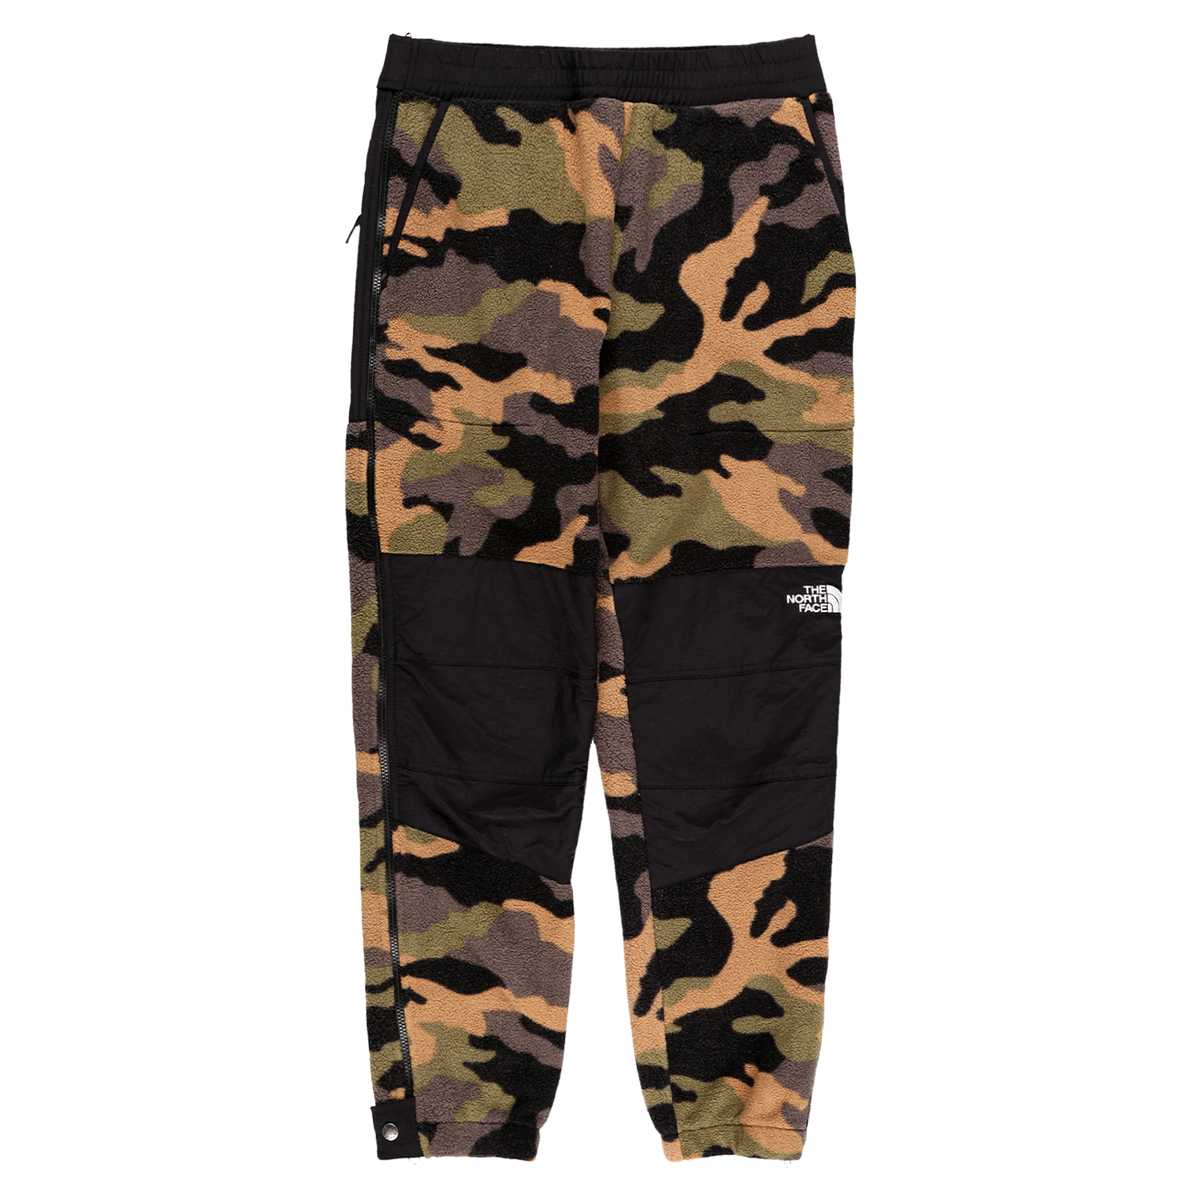 North Face 95 Retro Denali Pants  - XHIBITION